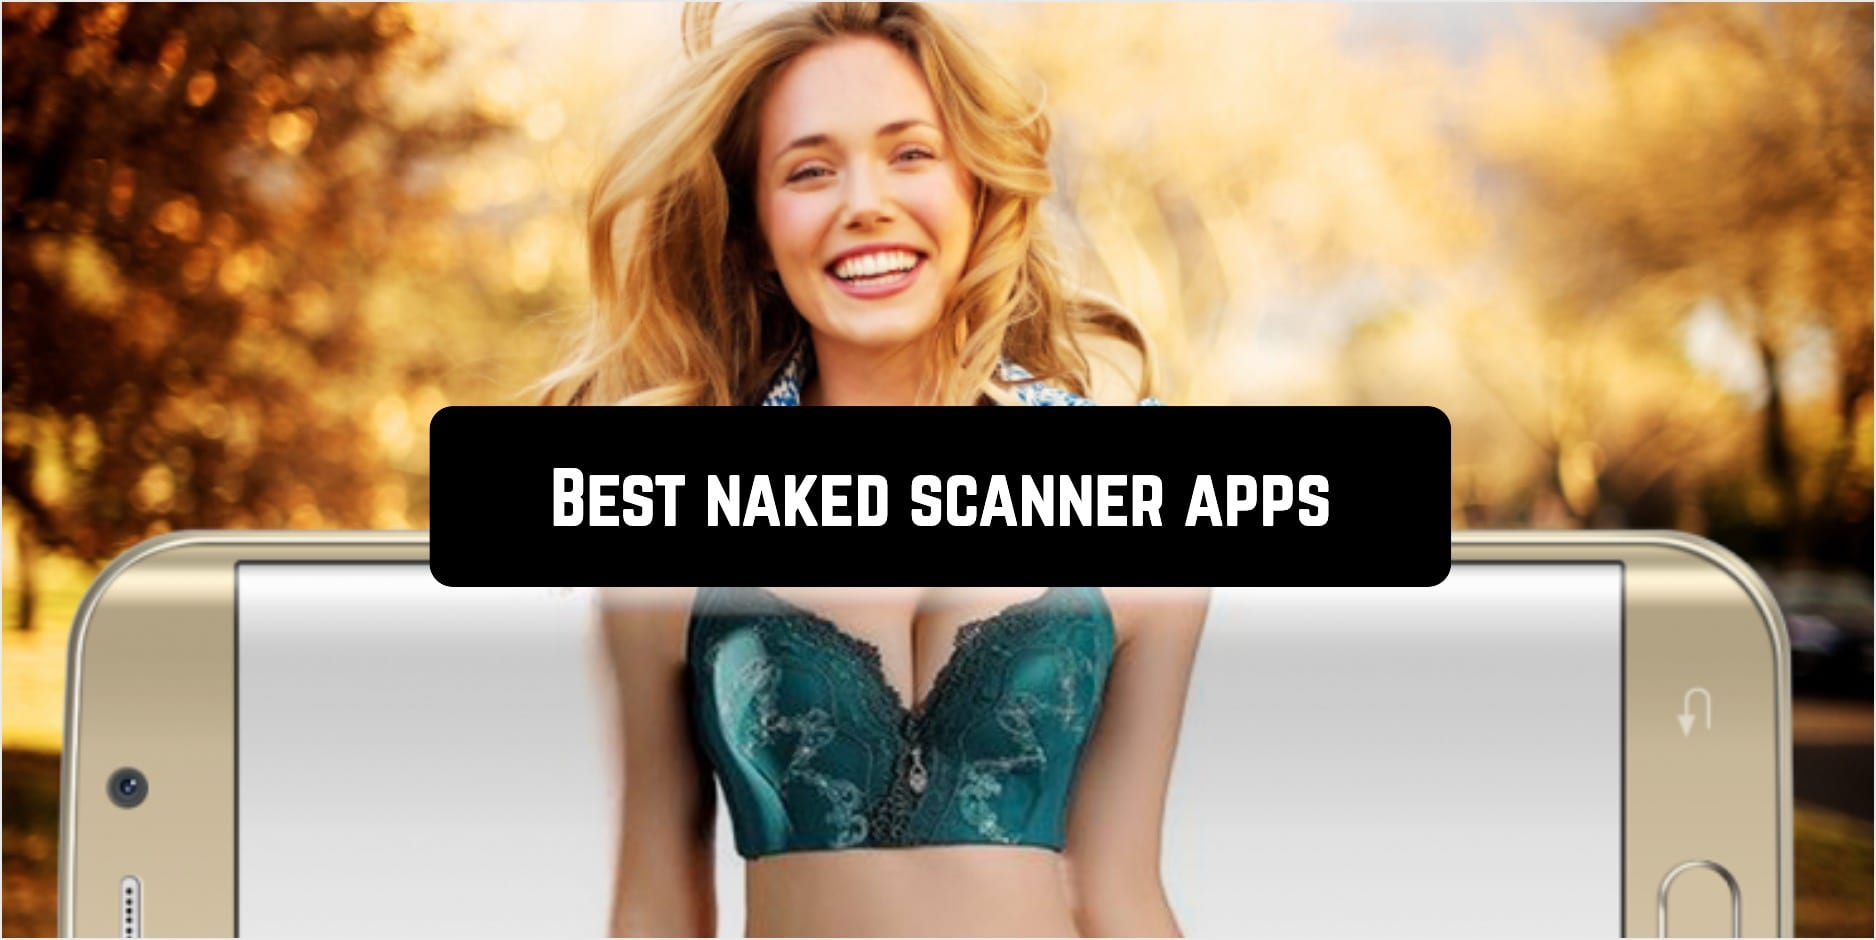 Best naked scanner apps